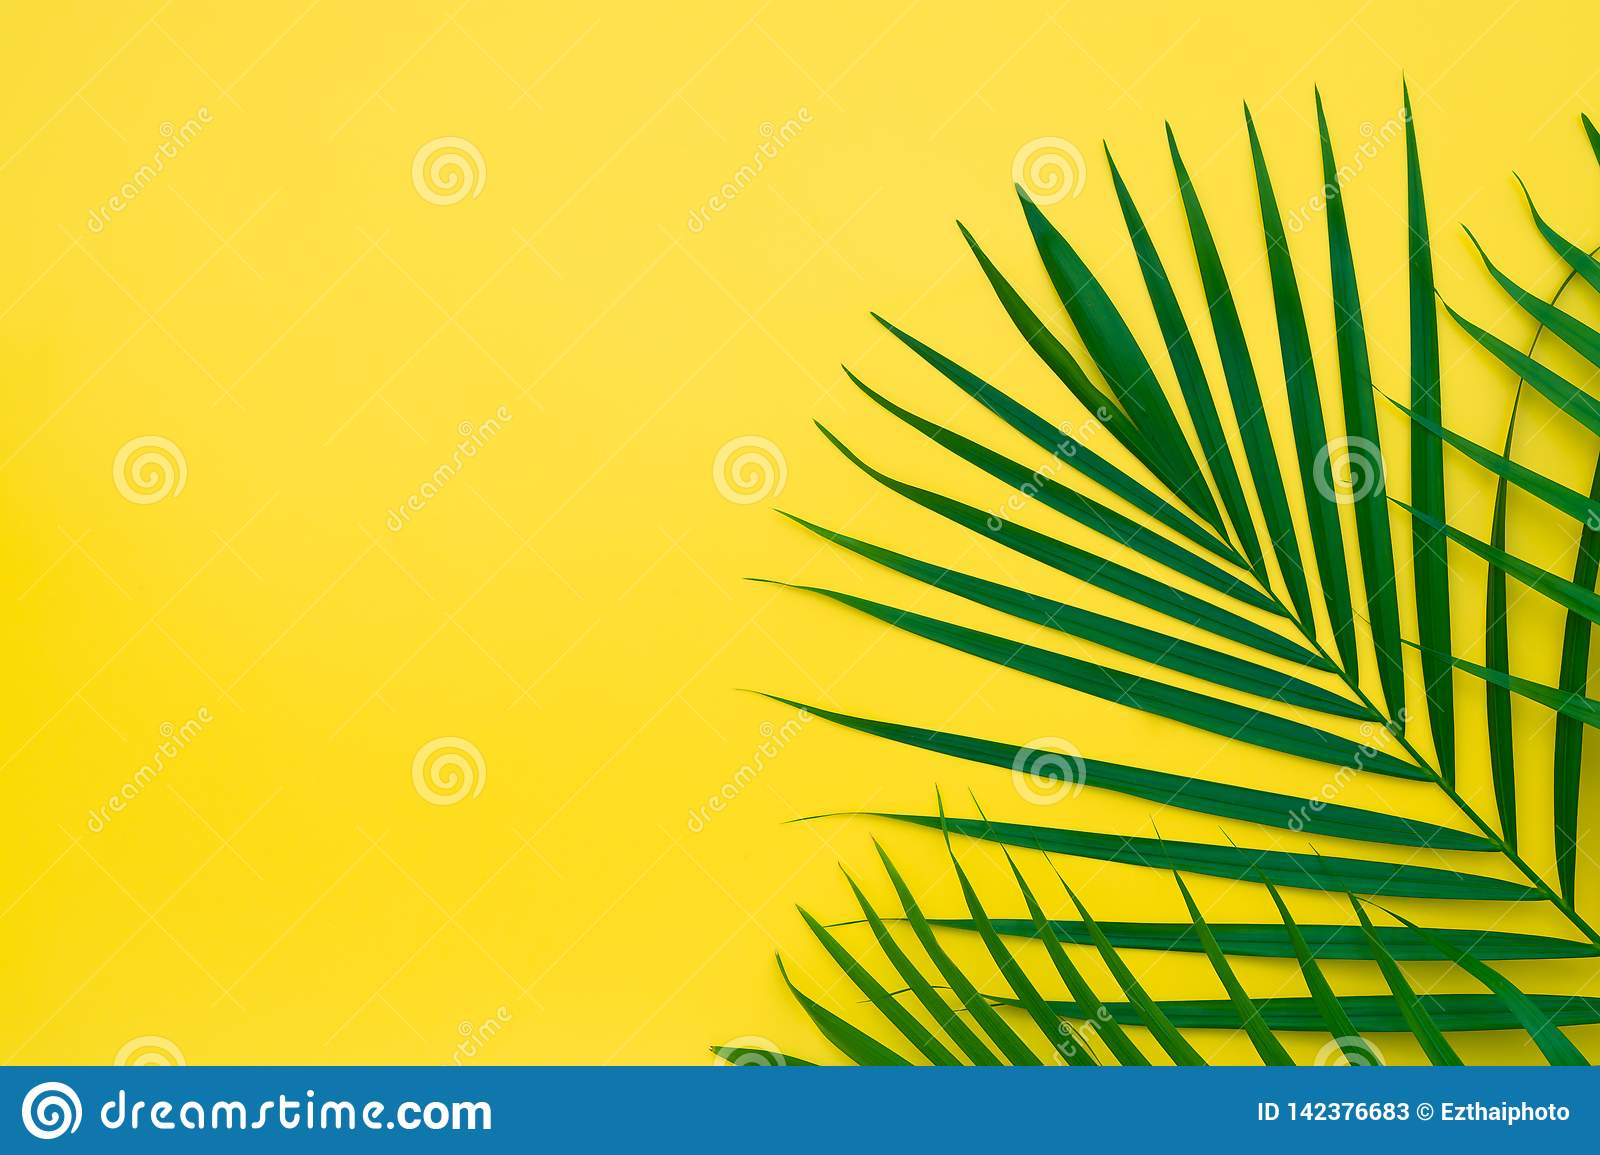 Green leaves of palm tree on yellow background. Flat lay minimal nature style of tropical palm leaves on yellow background.